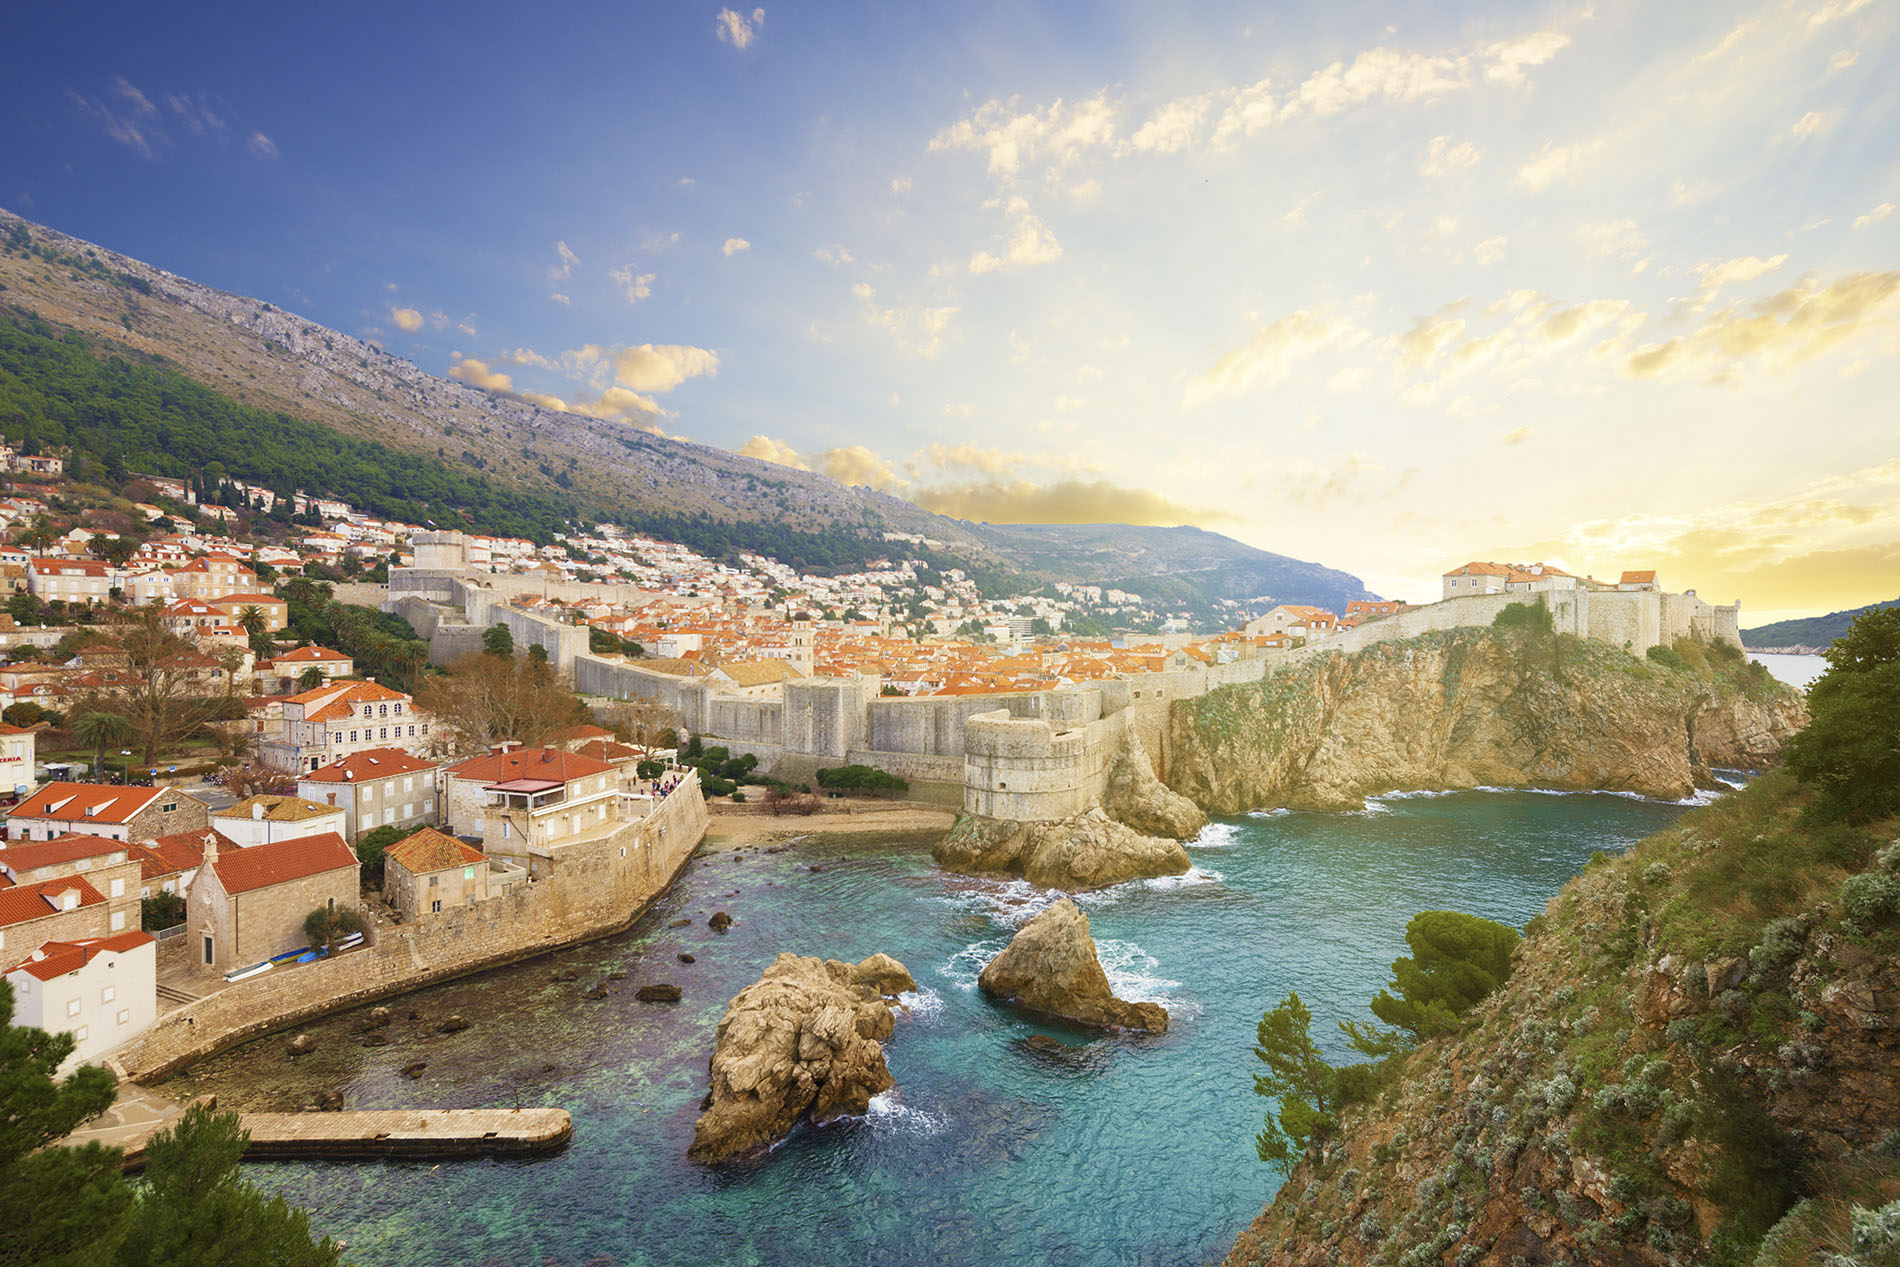 The beautiful landscape of Dubrovnik